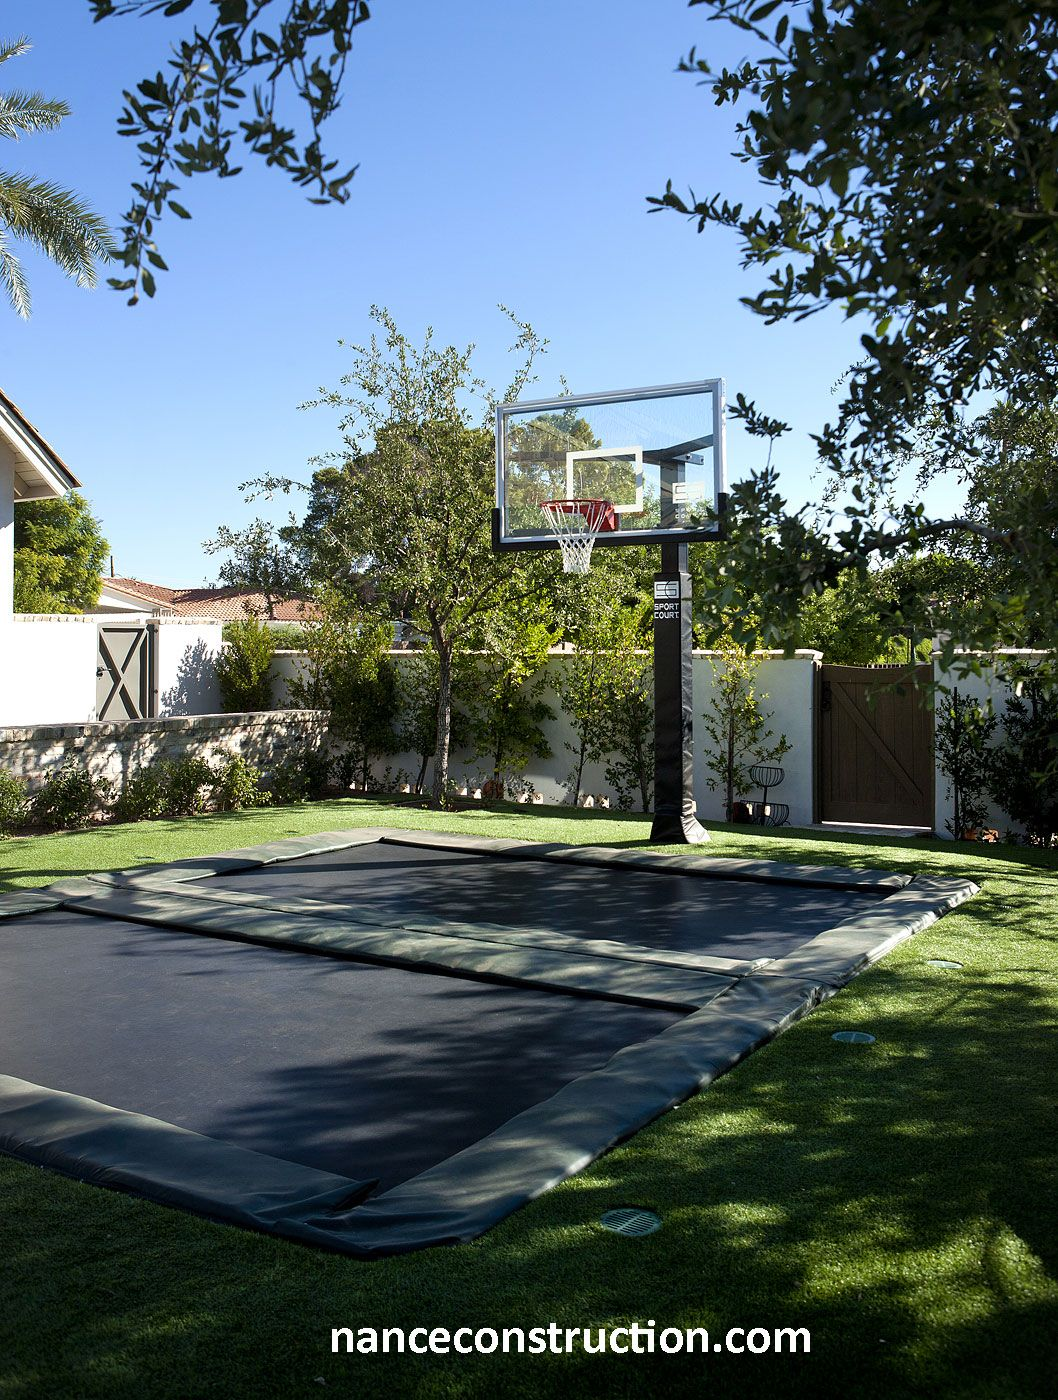 trampoline and basketball hoop outdoor living by nance